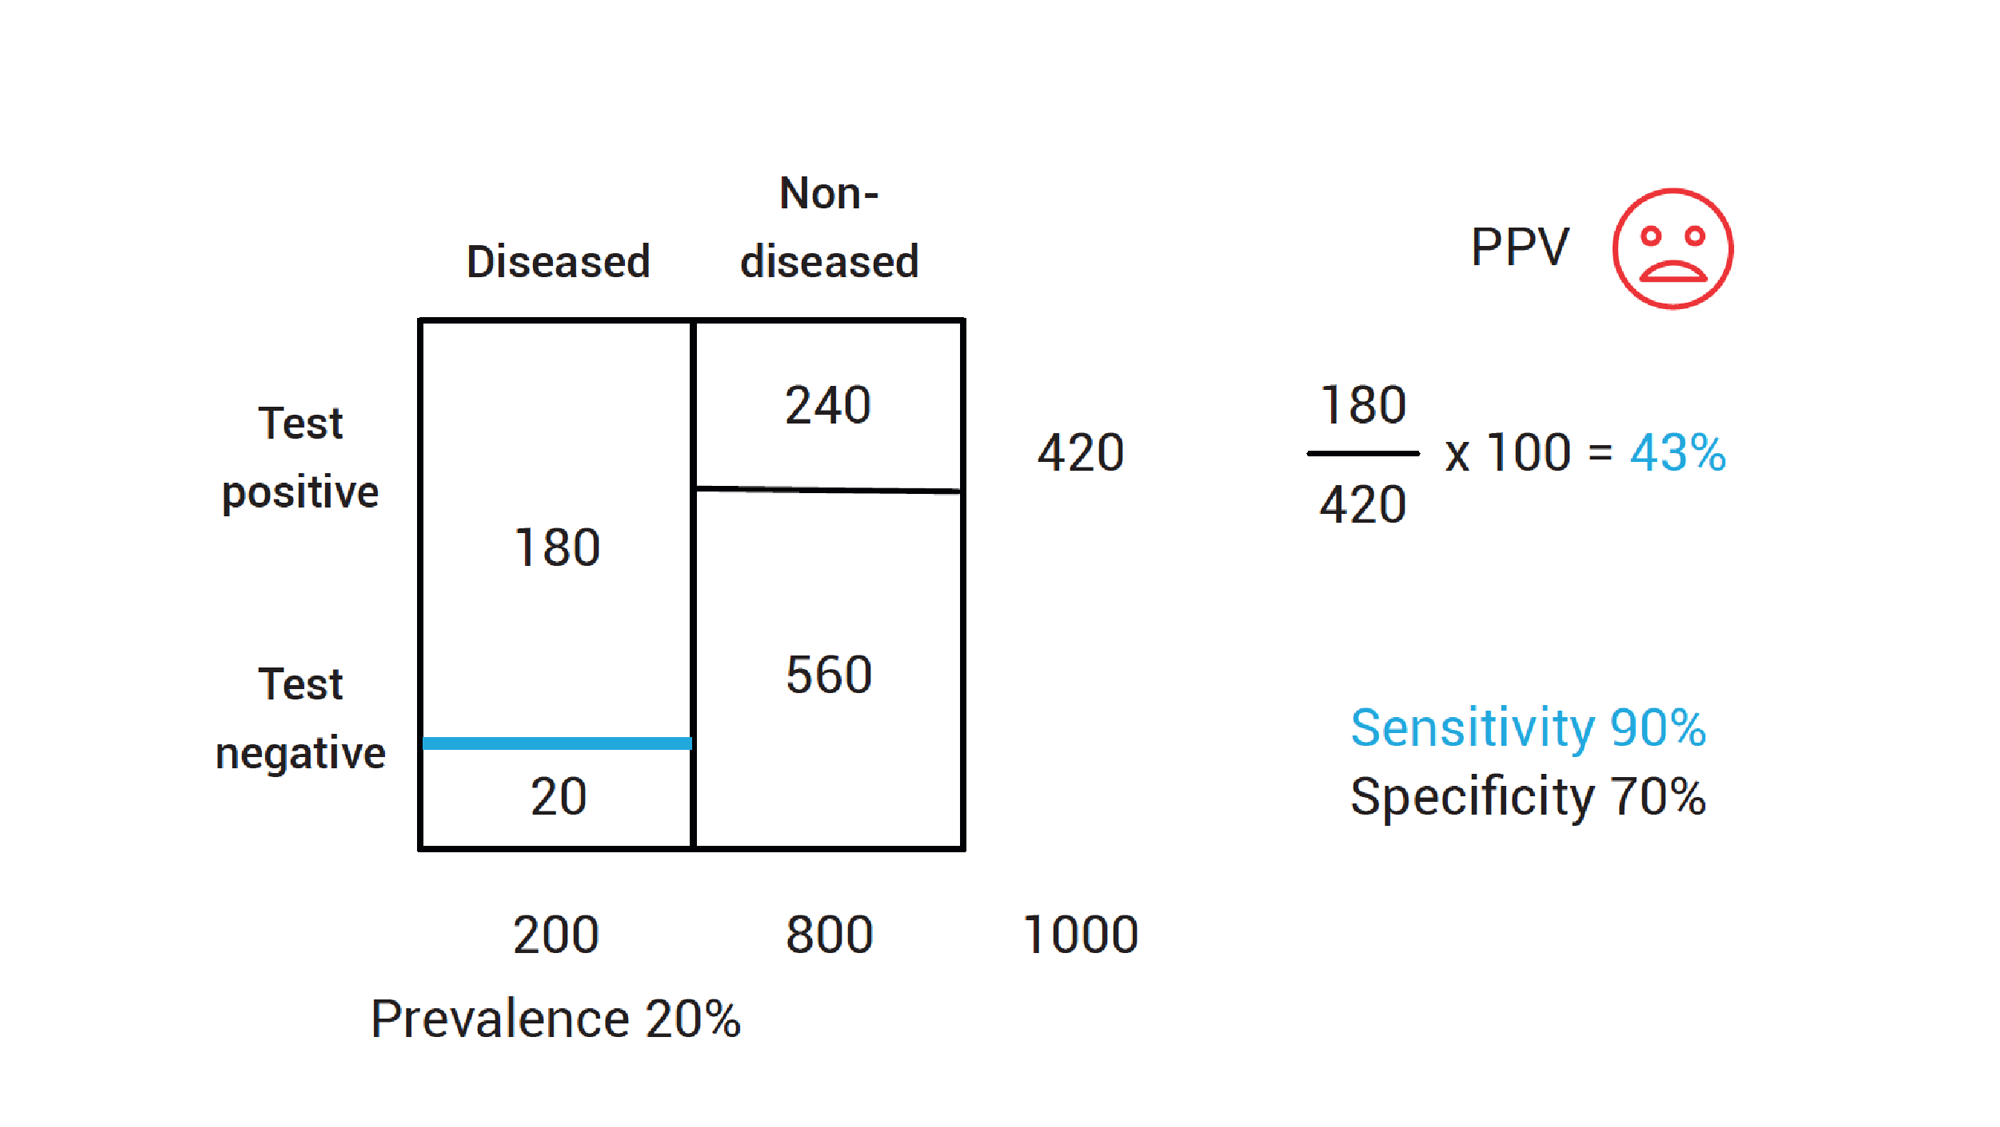 Calculating positive predictive value with low disease prevalence using a test with high sensitivity.